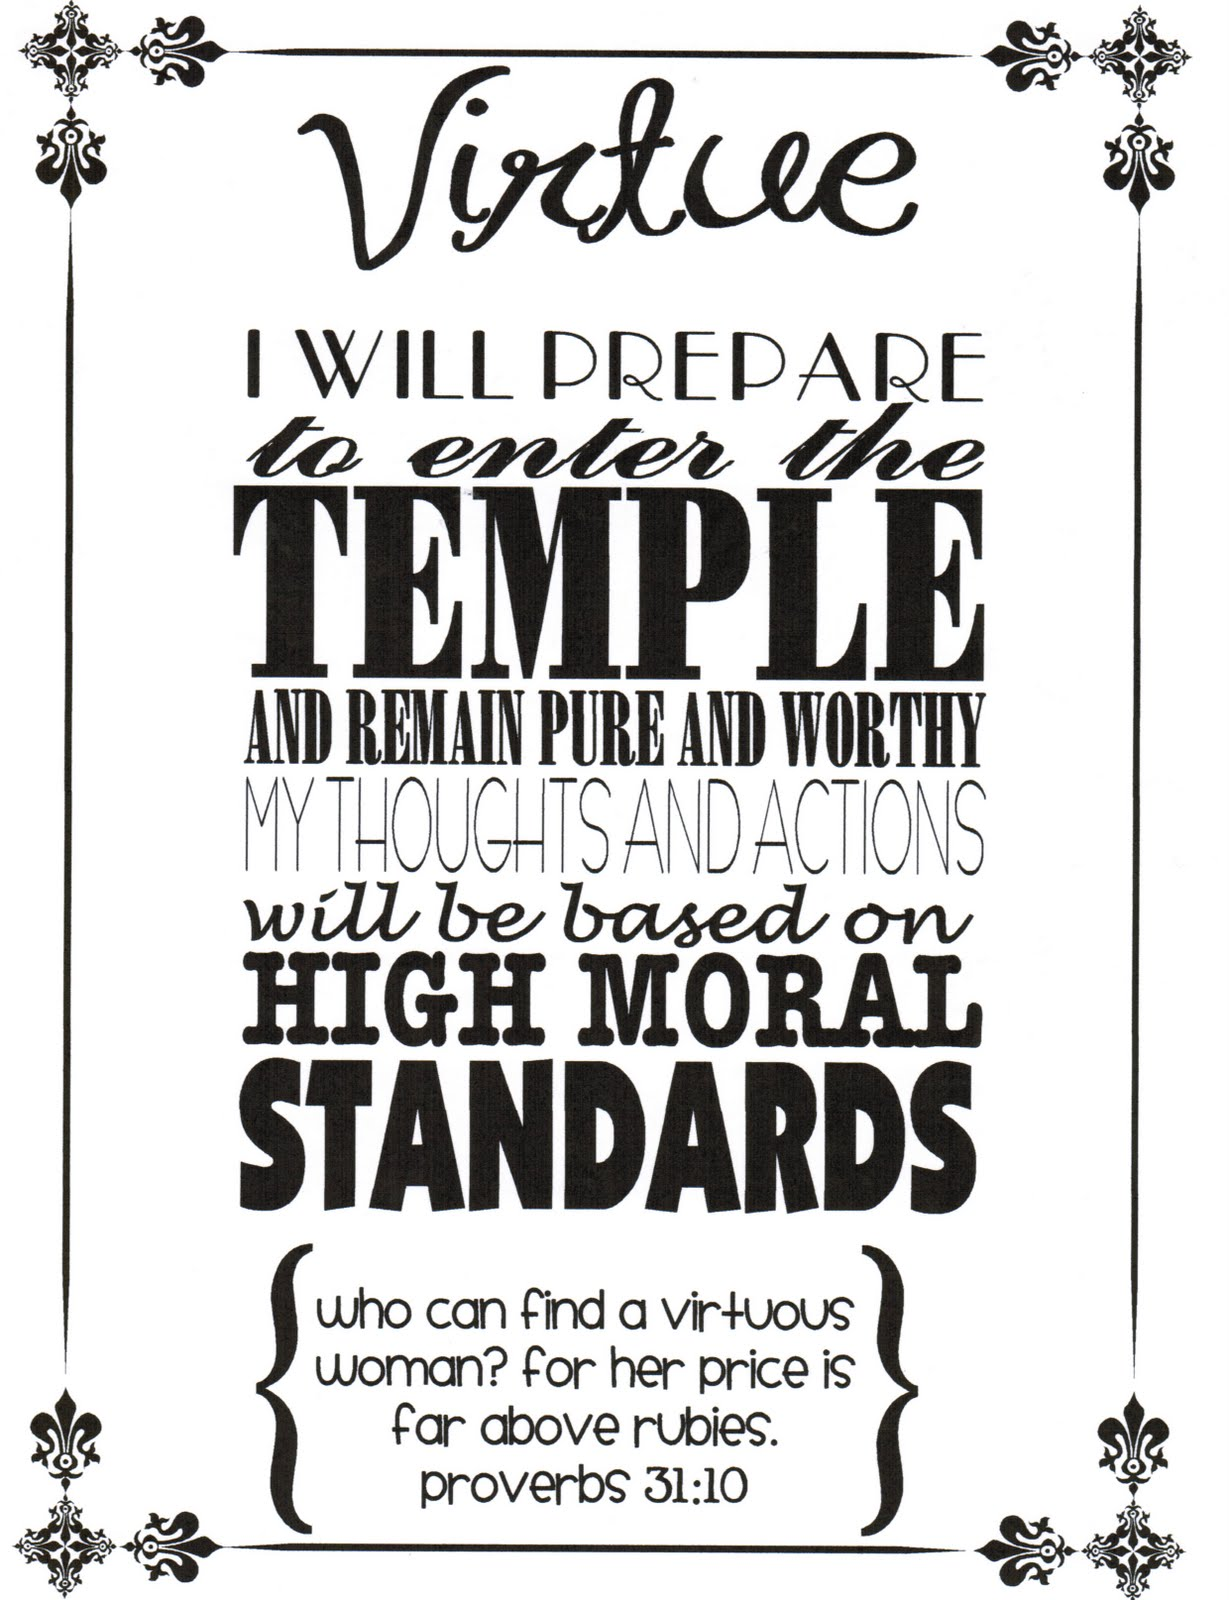 Adorable antics getting our yw personal progress organized book of mormon reading chart to go with virtue buycottarizona Image collections